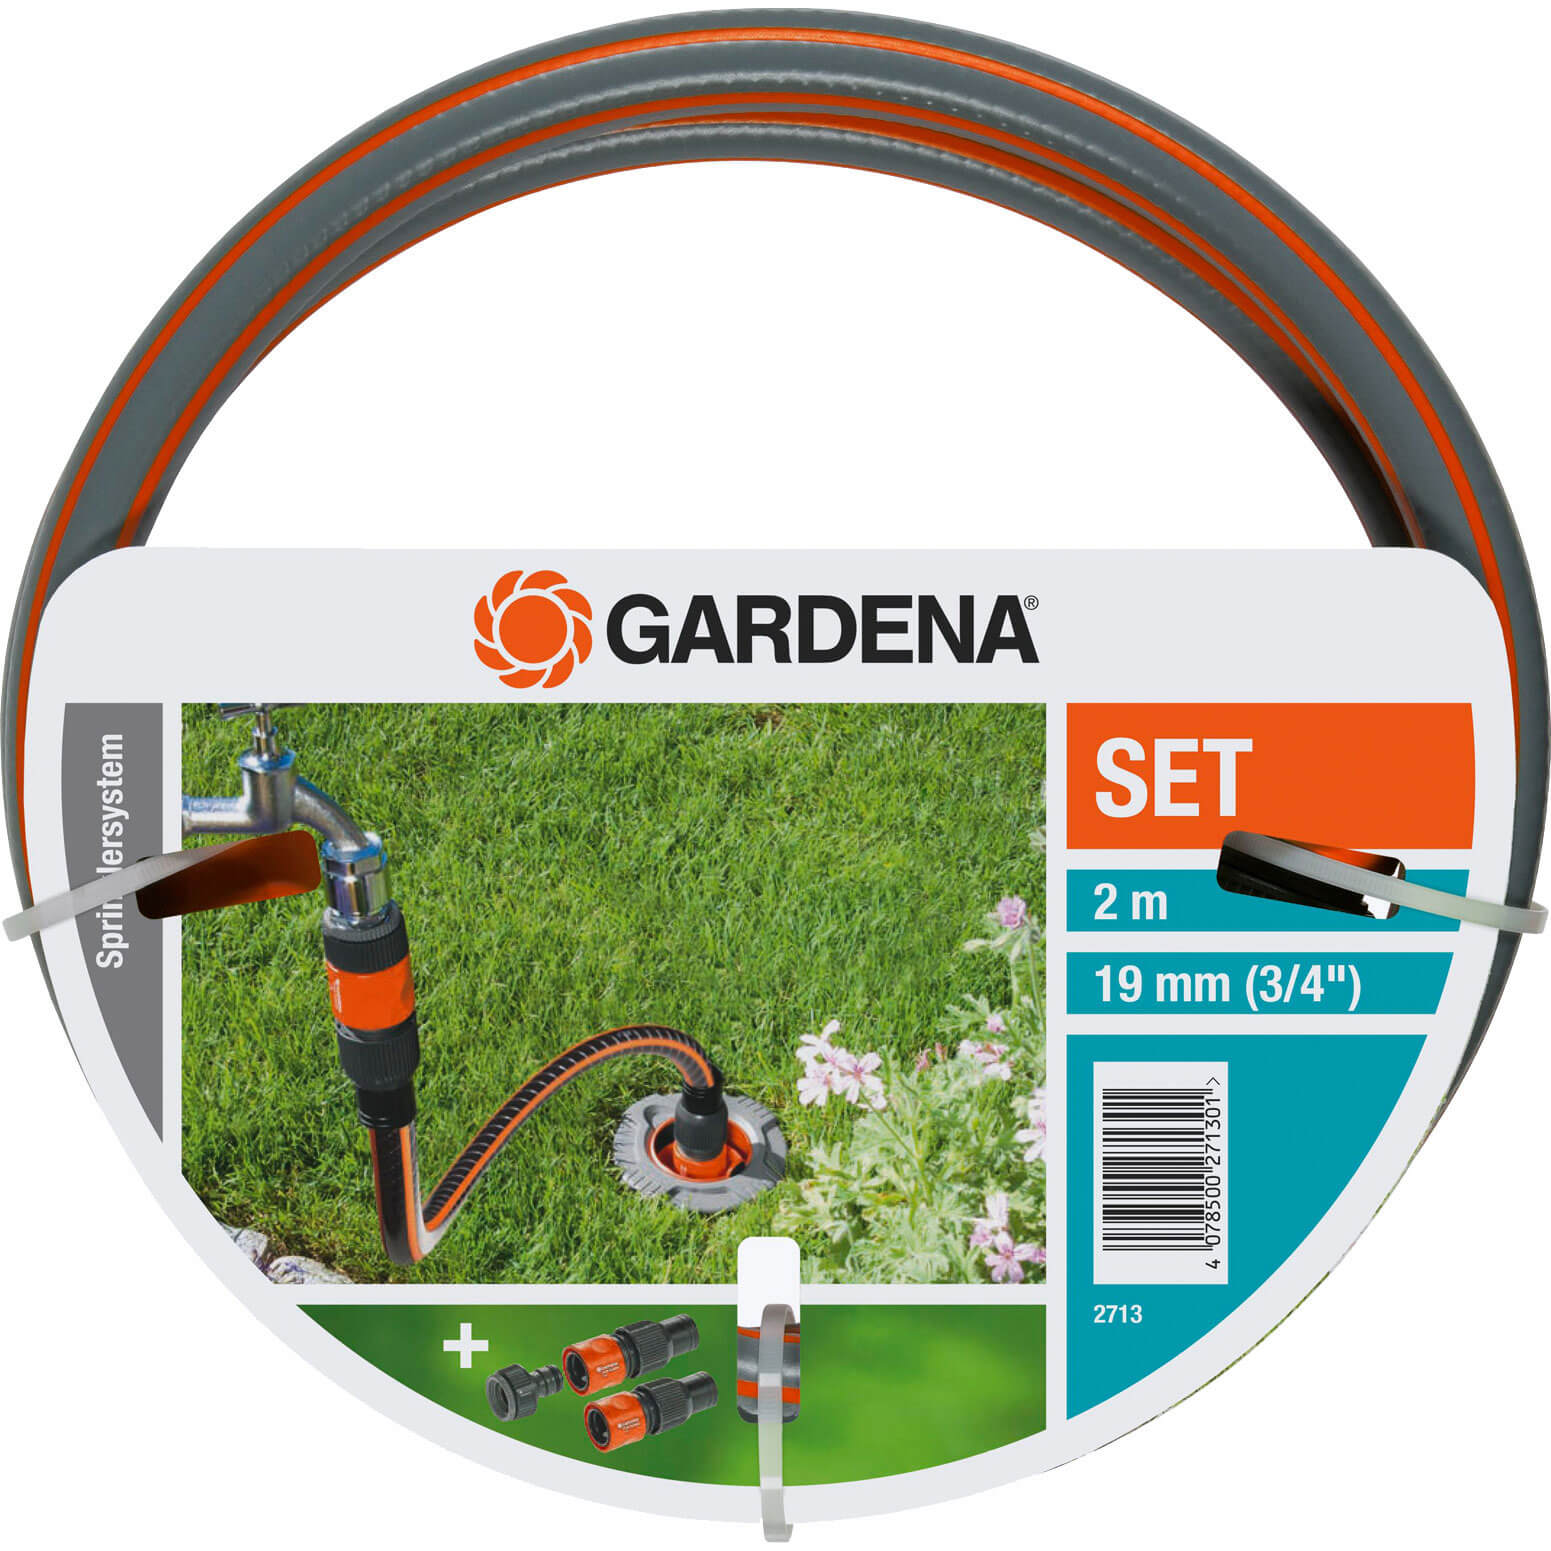 gardena sprinkler system profi hose pipe connection set. Black Bedroom Furniture Sets. Home Design Ideas